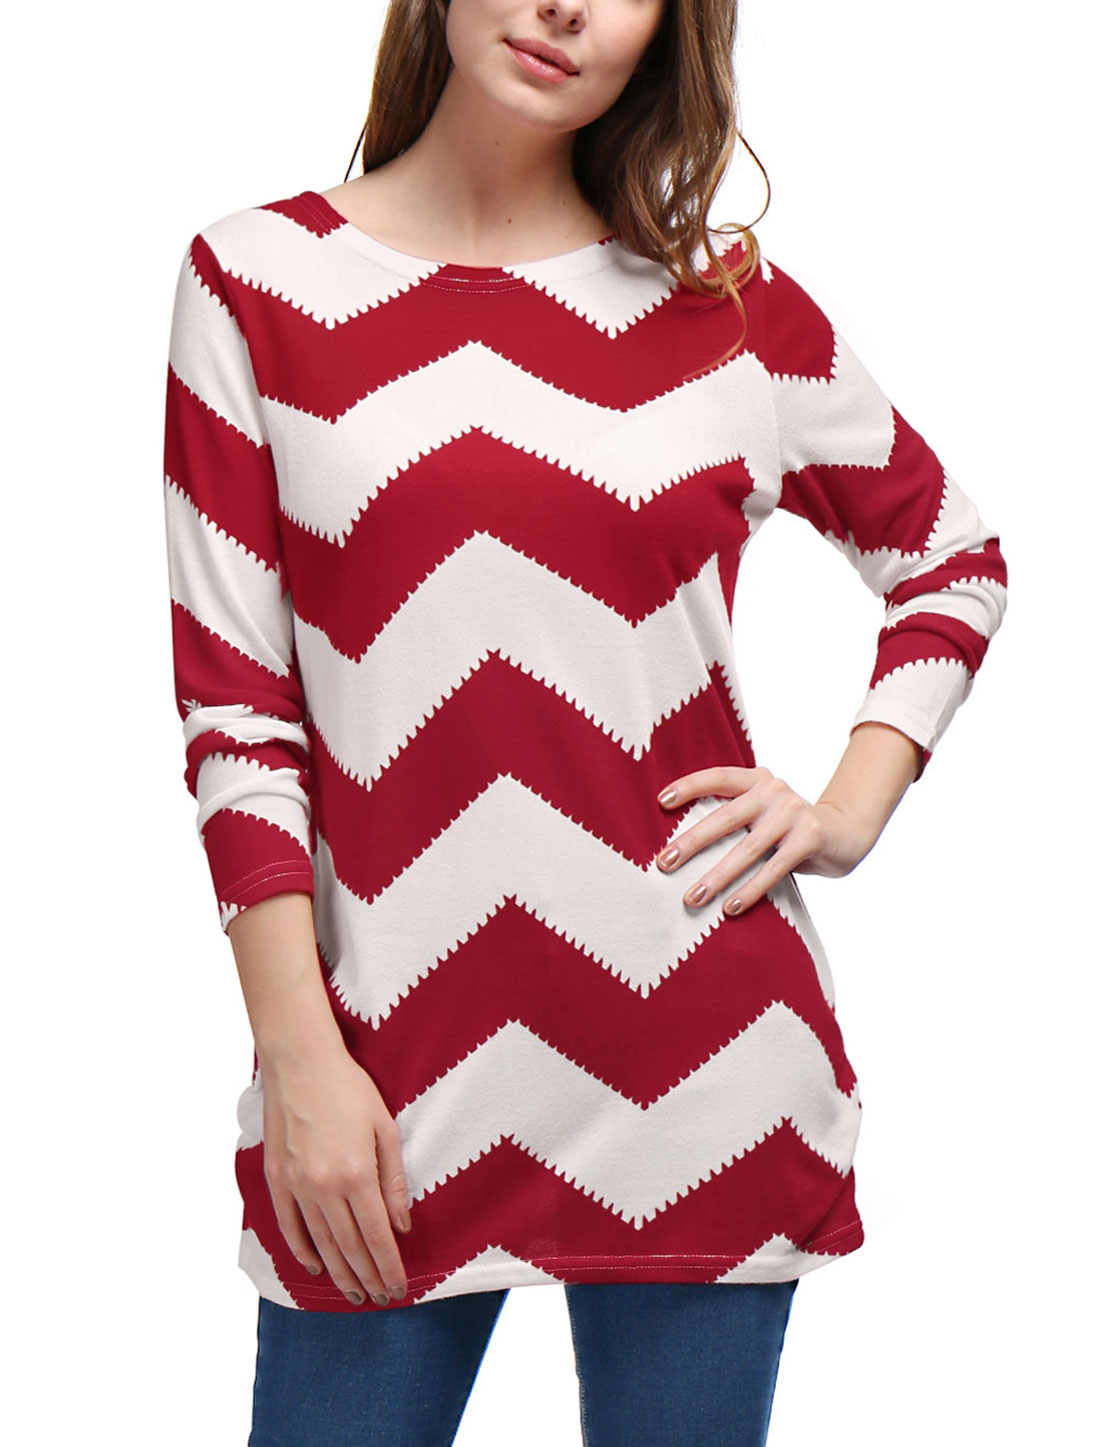 Woman Zig-Zag Pattern Knitted Relax Fit Tunic Top Red White S